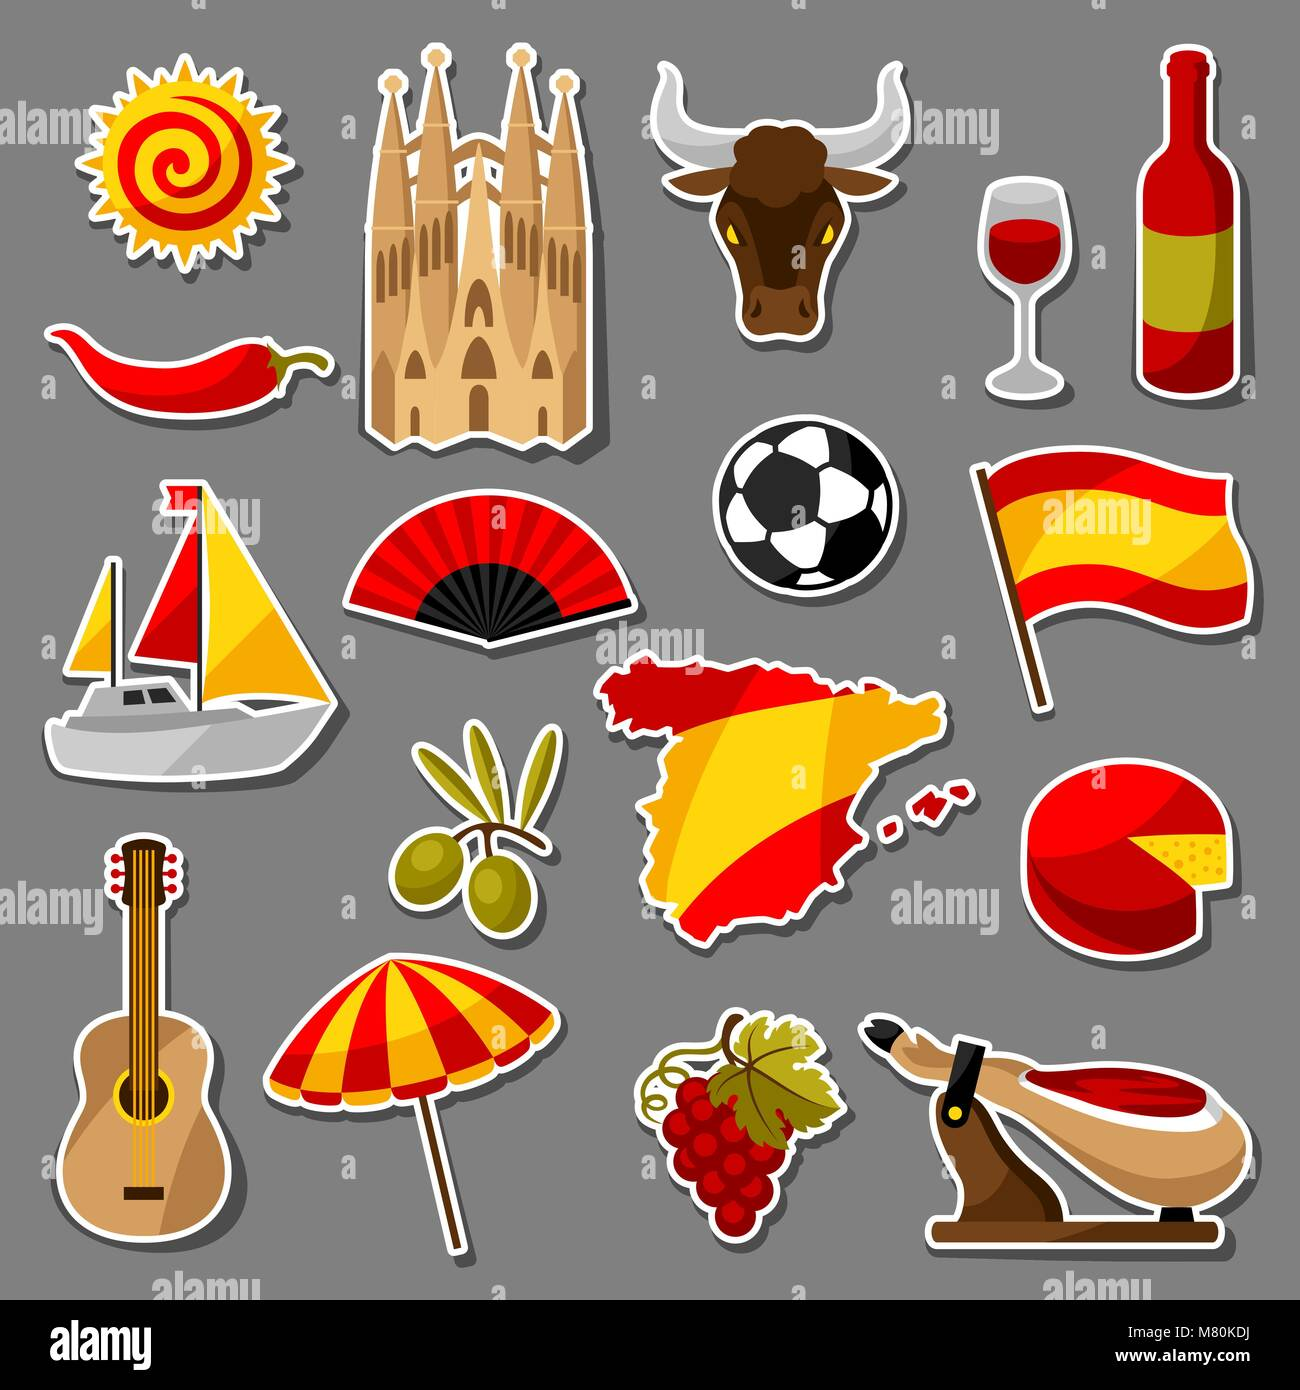 Spain Sticker Icons Set Spanish Traditional Symbols And Objects